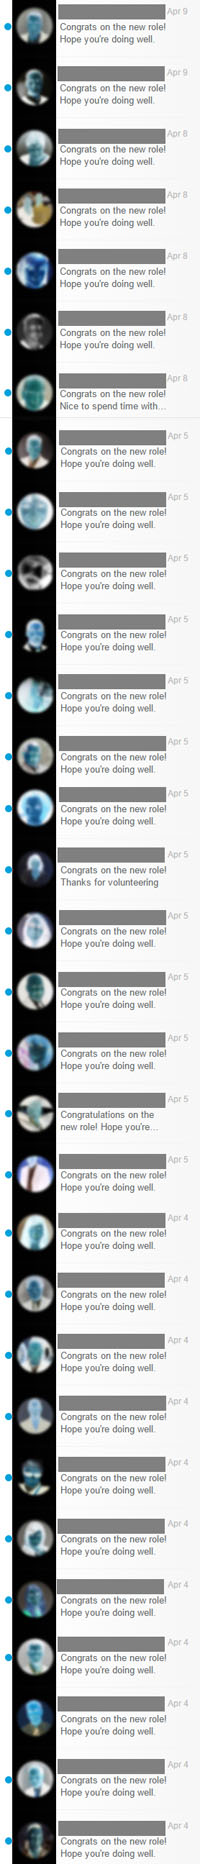 Static Digital Messaging Spam - LinkedIn